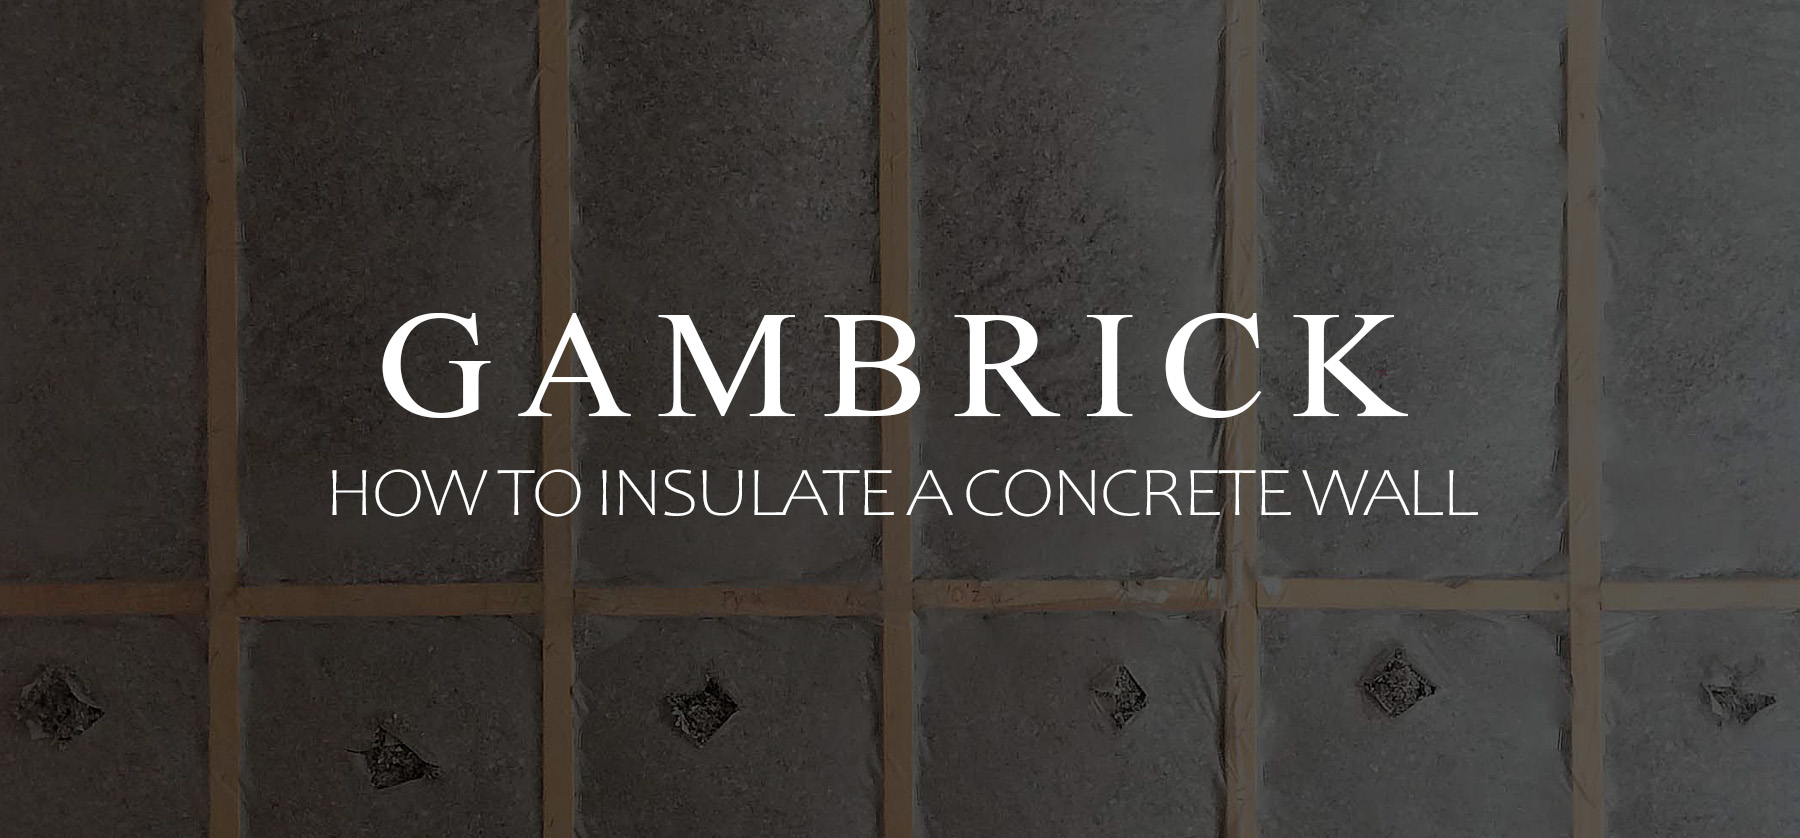 how to insulate a concrete wall banner pic